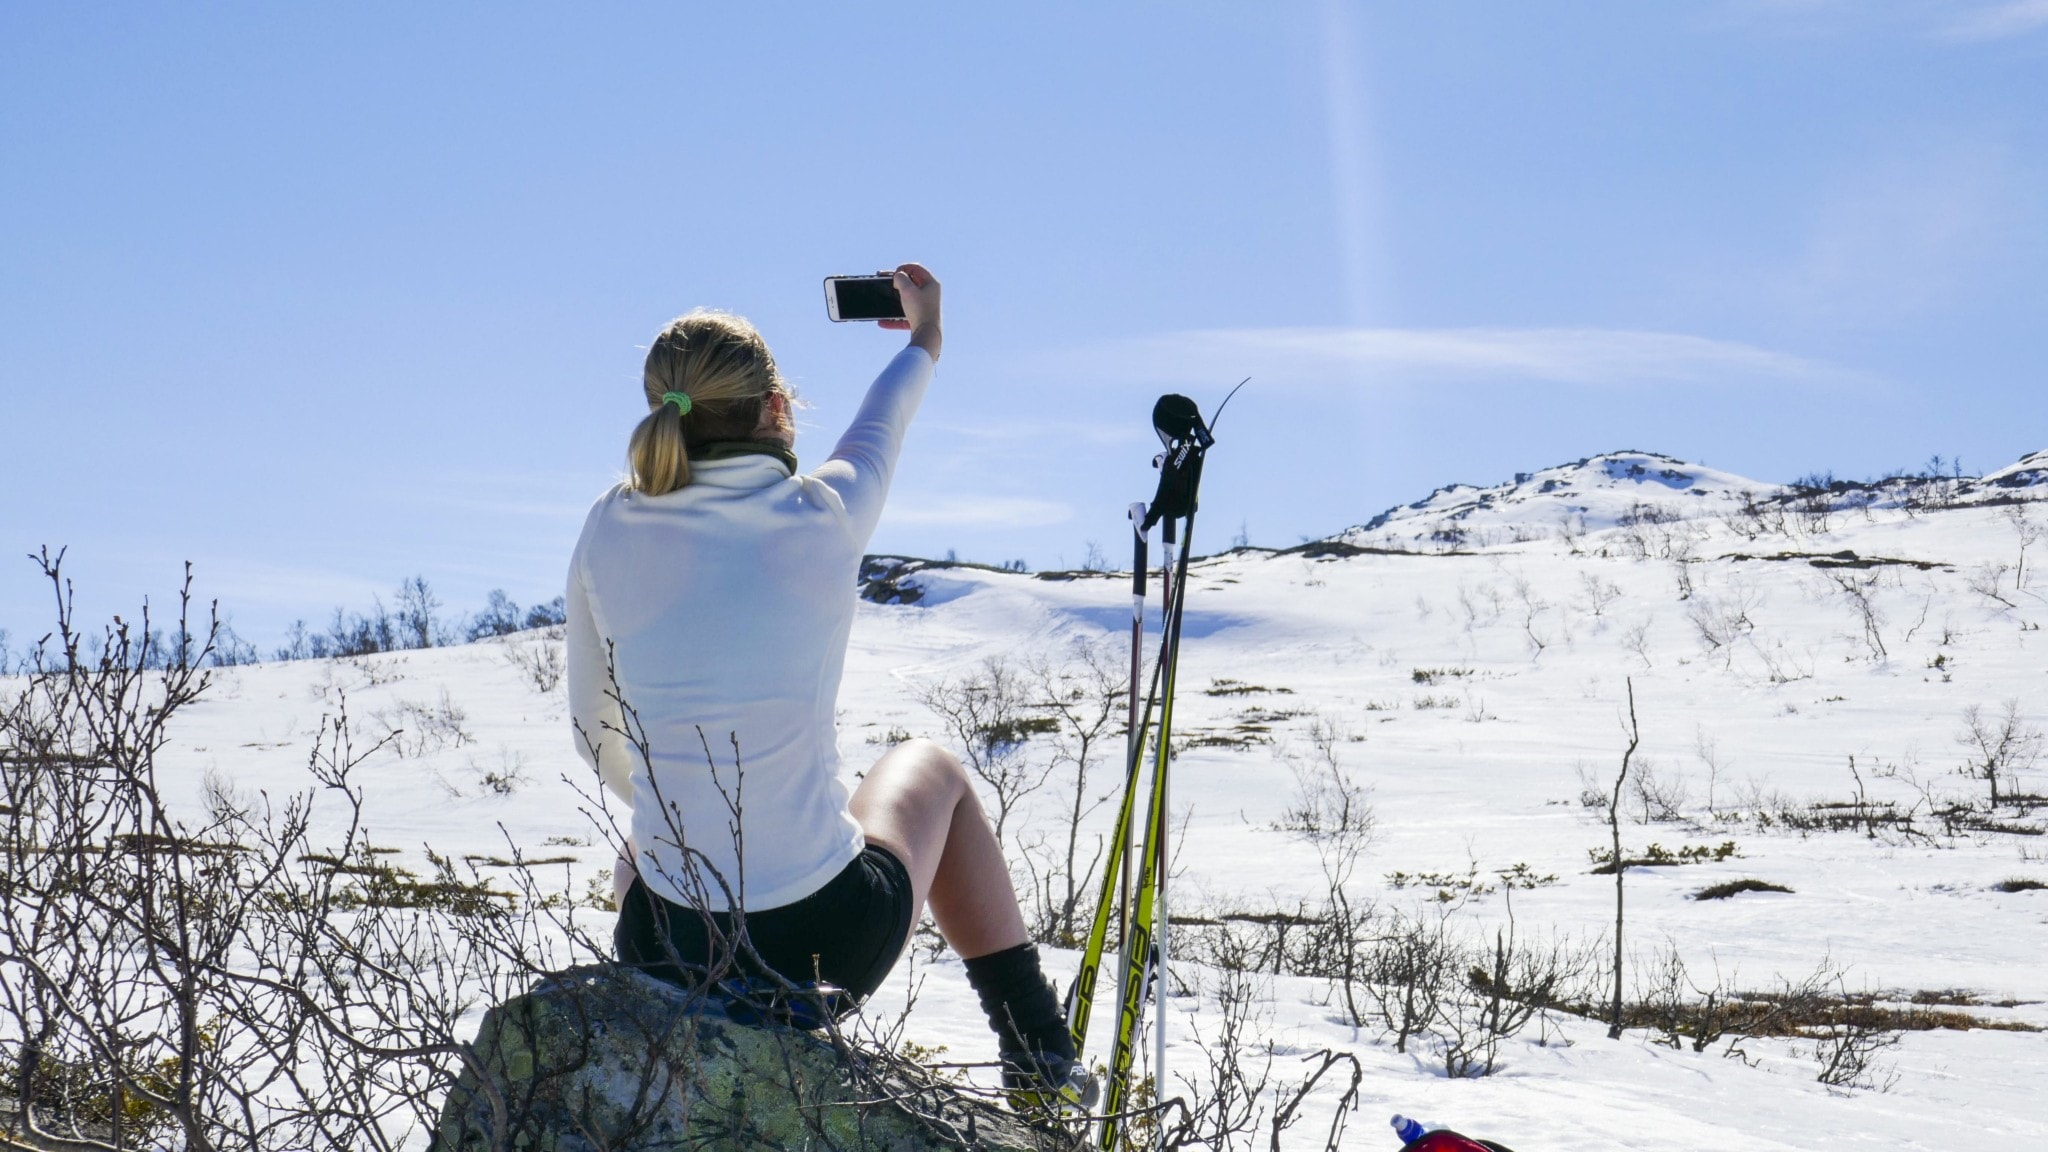 A skiier taking a selfie in the sun